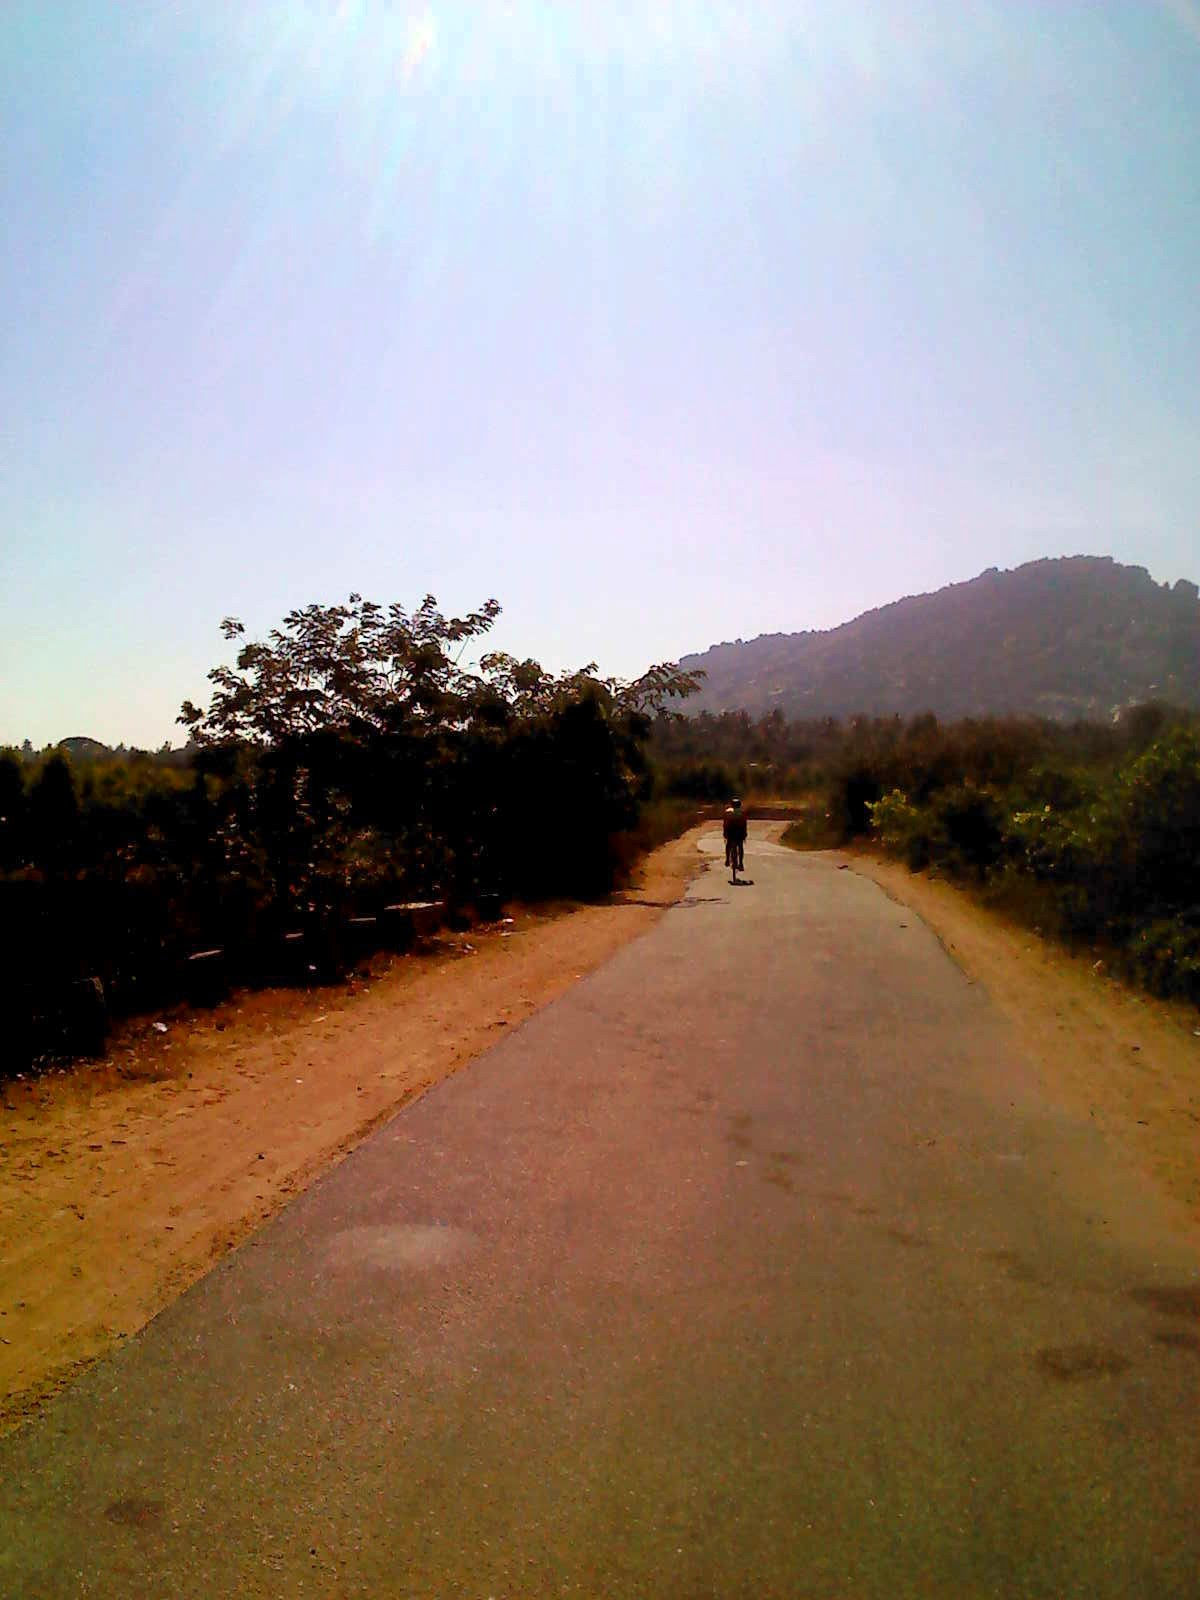 Bicyclist on road from Malur to Bangarpet